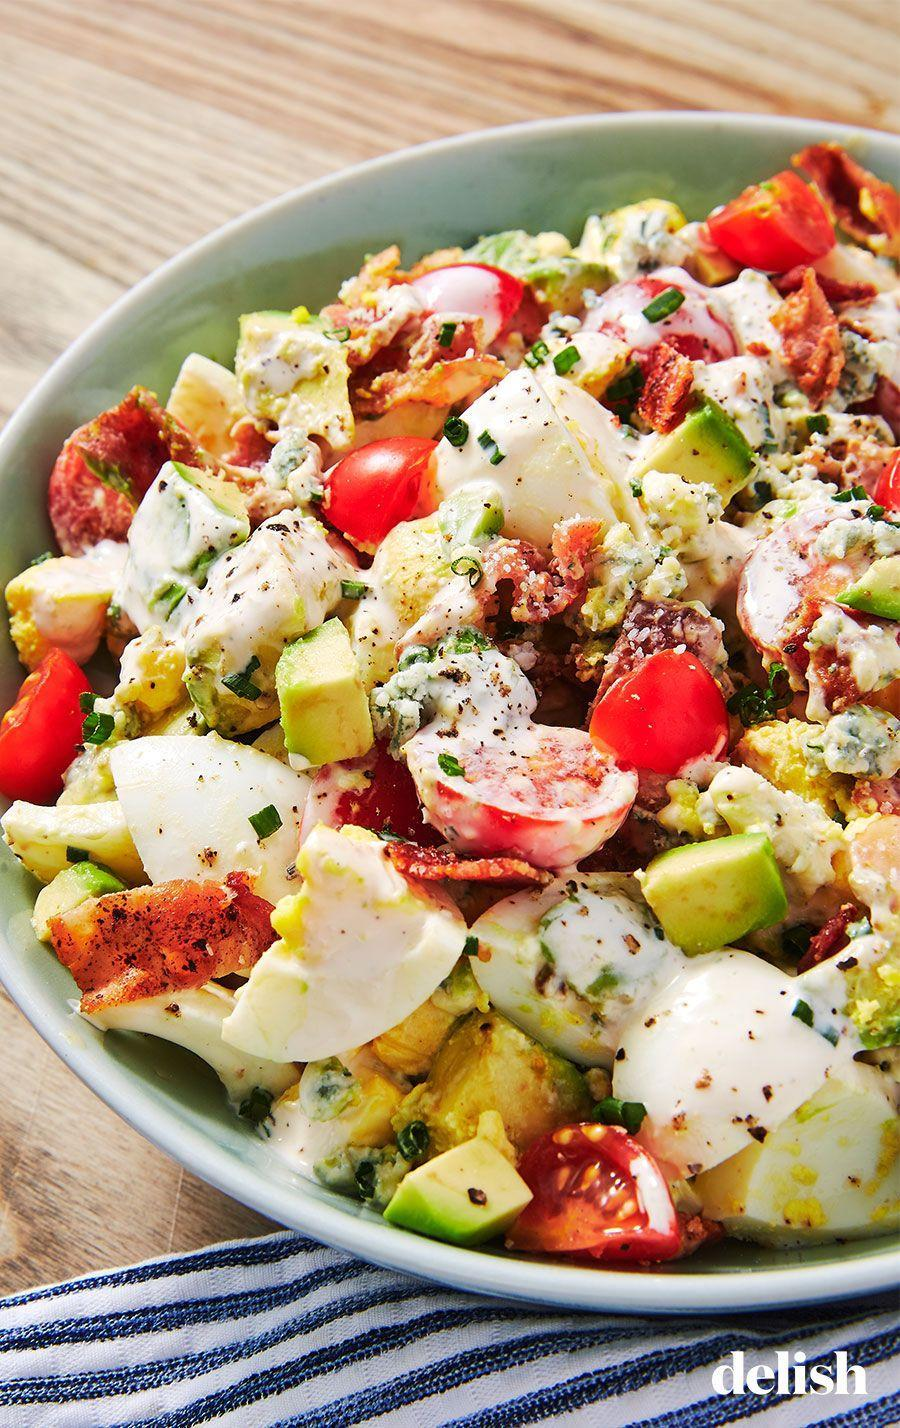 "<p>This is so creamy and delicious.</p><p>Get the recipe from <a href=""https://www.delish.com/cooking/recipe-ideas/a19484613/cobb-egg-salad-recipe/"" rel=""nofollow noopener"" target=""_blank"" data-ylk=""slk:Delish"" class=""link rapid-noclick-resp"">Delish</a>. </p>"